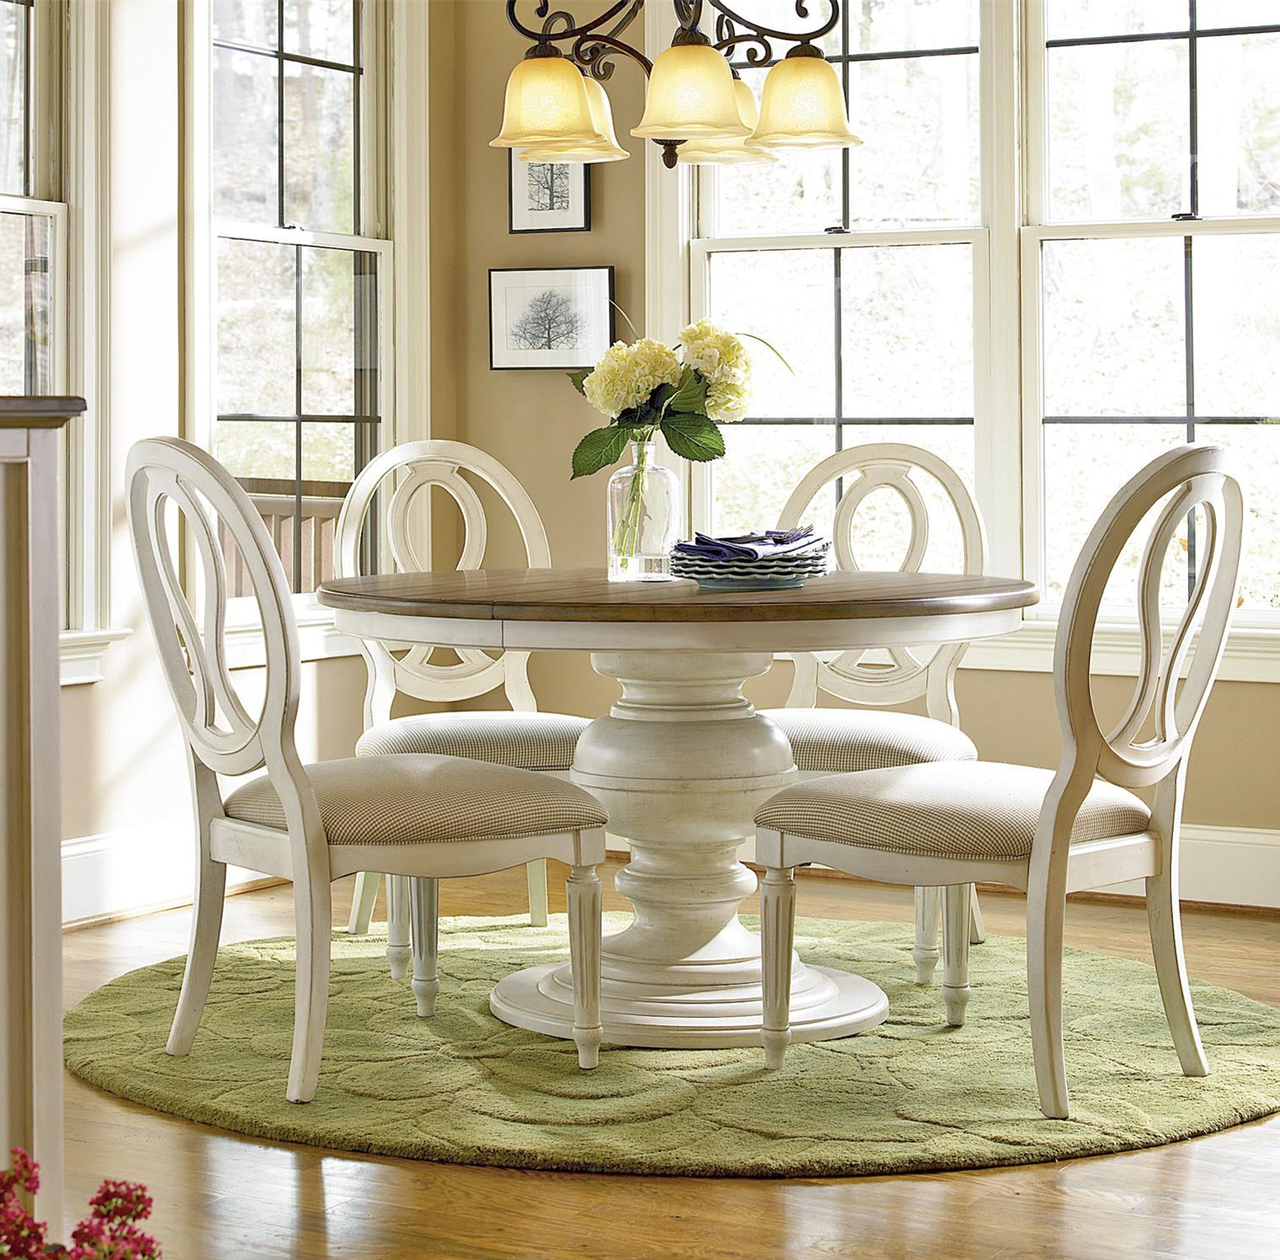 Superb Country Chic 5 Piece Round White Dining Table Set